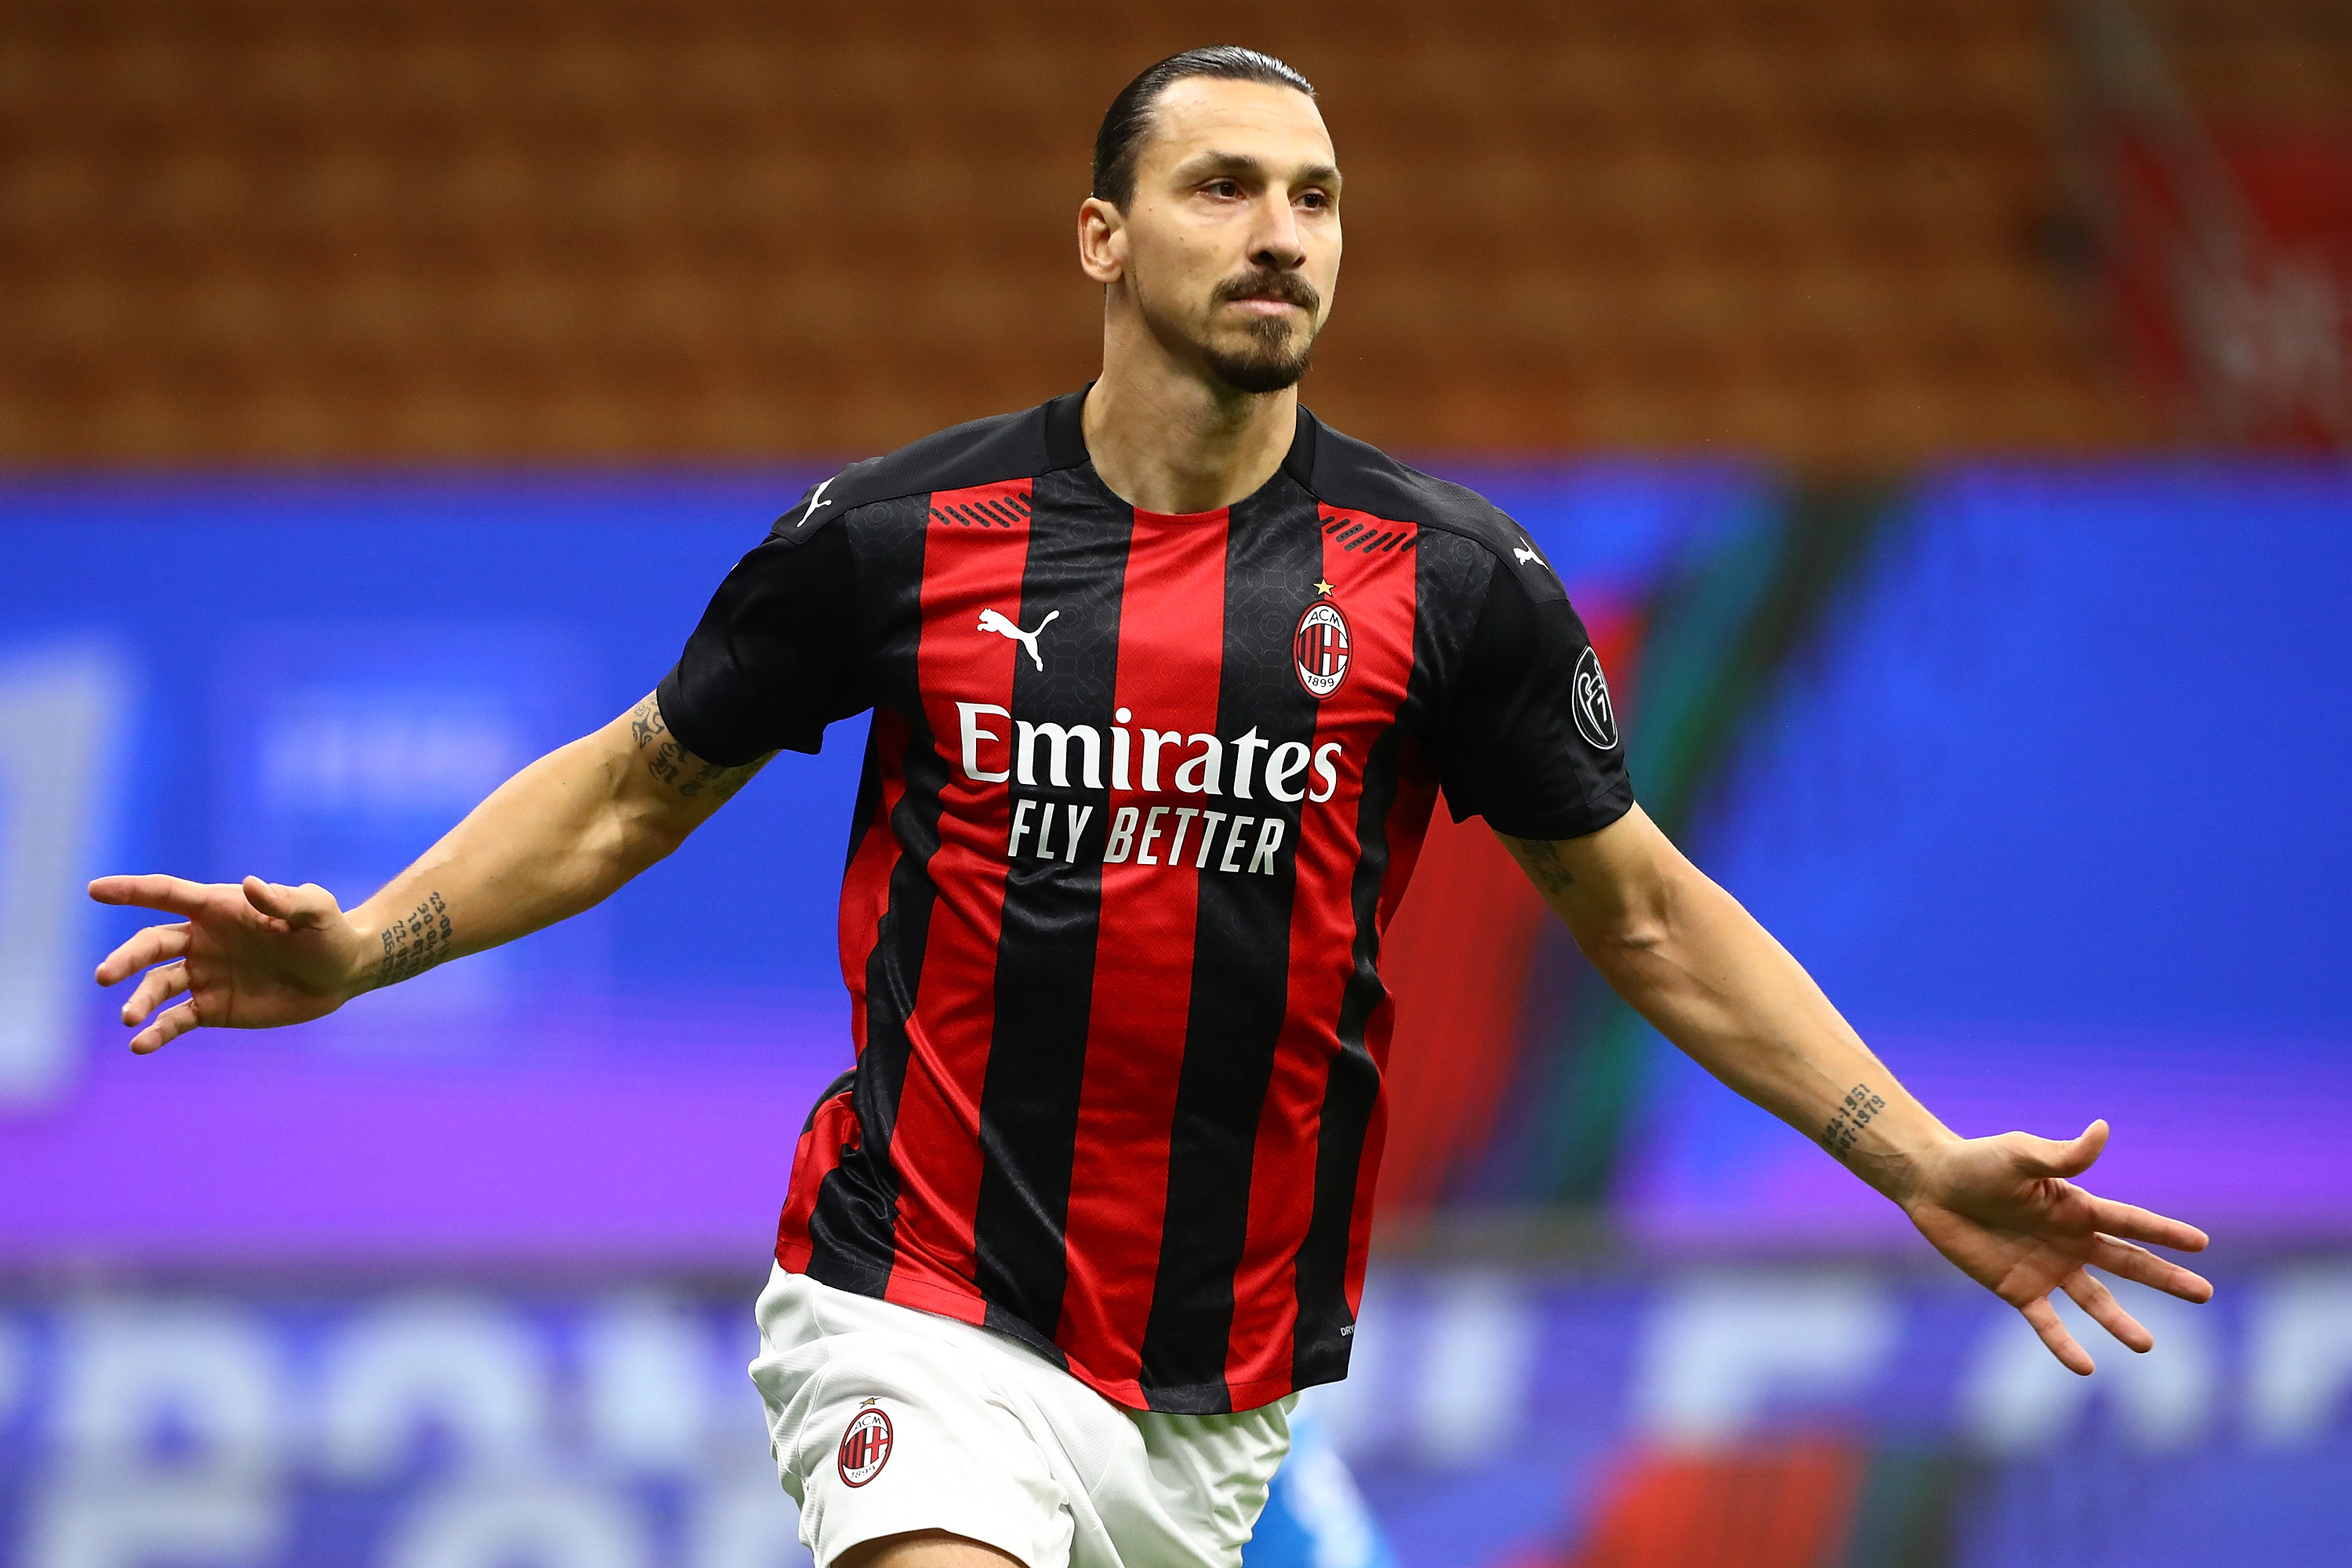 Zlatan Ibrahimovic scores twice as Serie A leader AC Milan draws against AS Roma